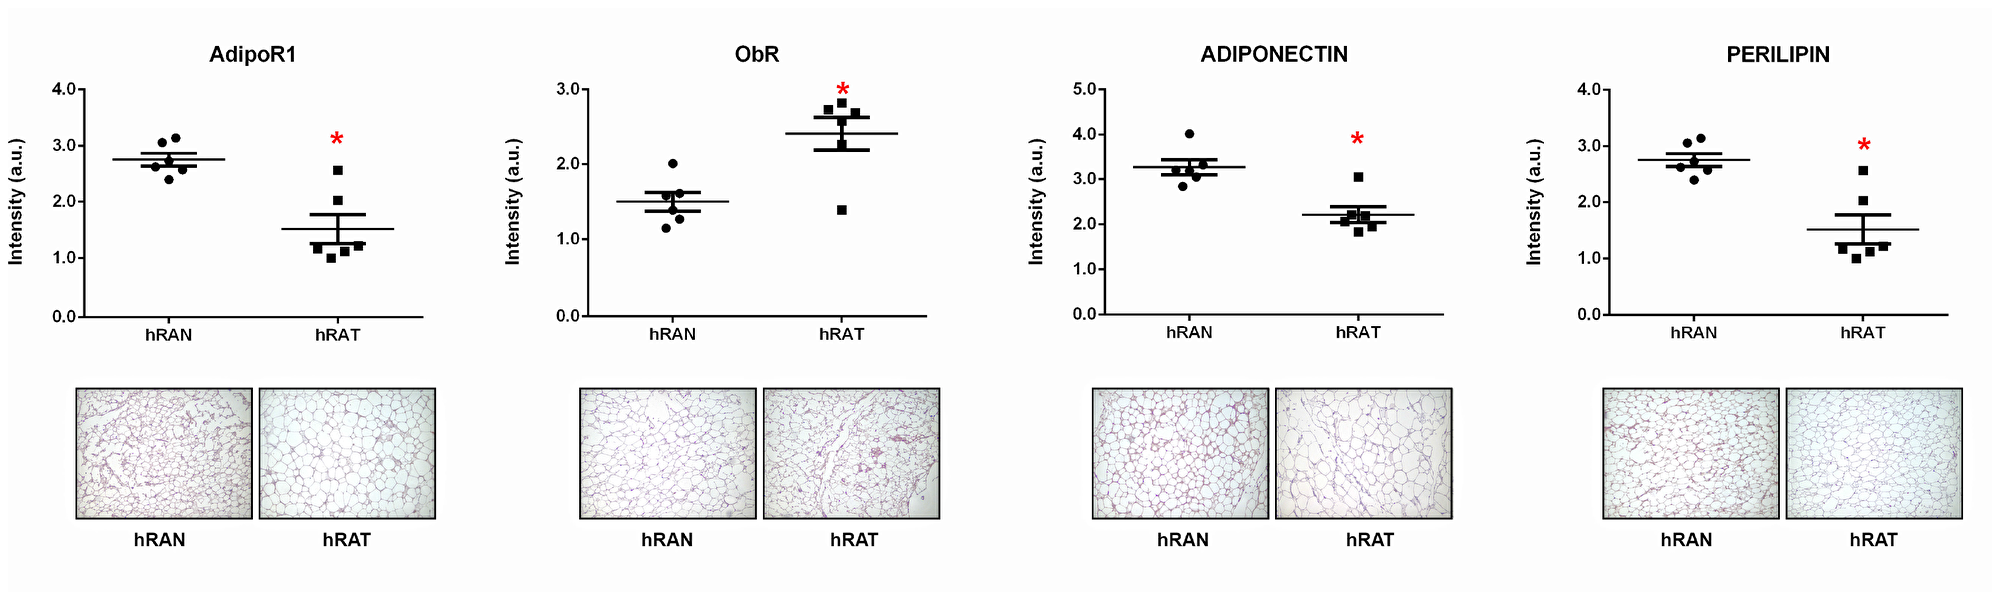 ObR, AdipoR1, adiponectin and perilipin 1 expression in the different adipose tissues.